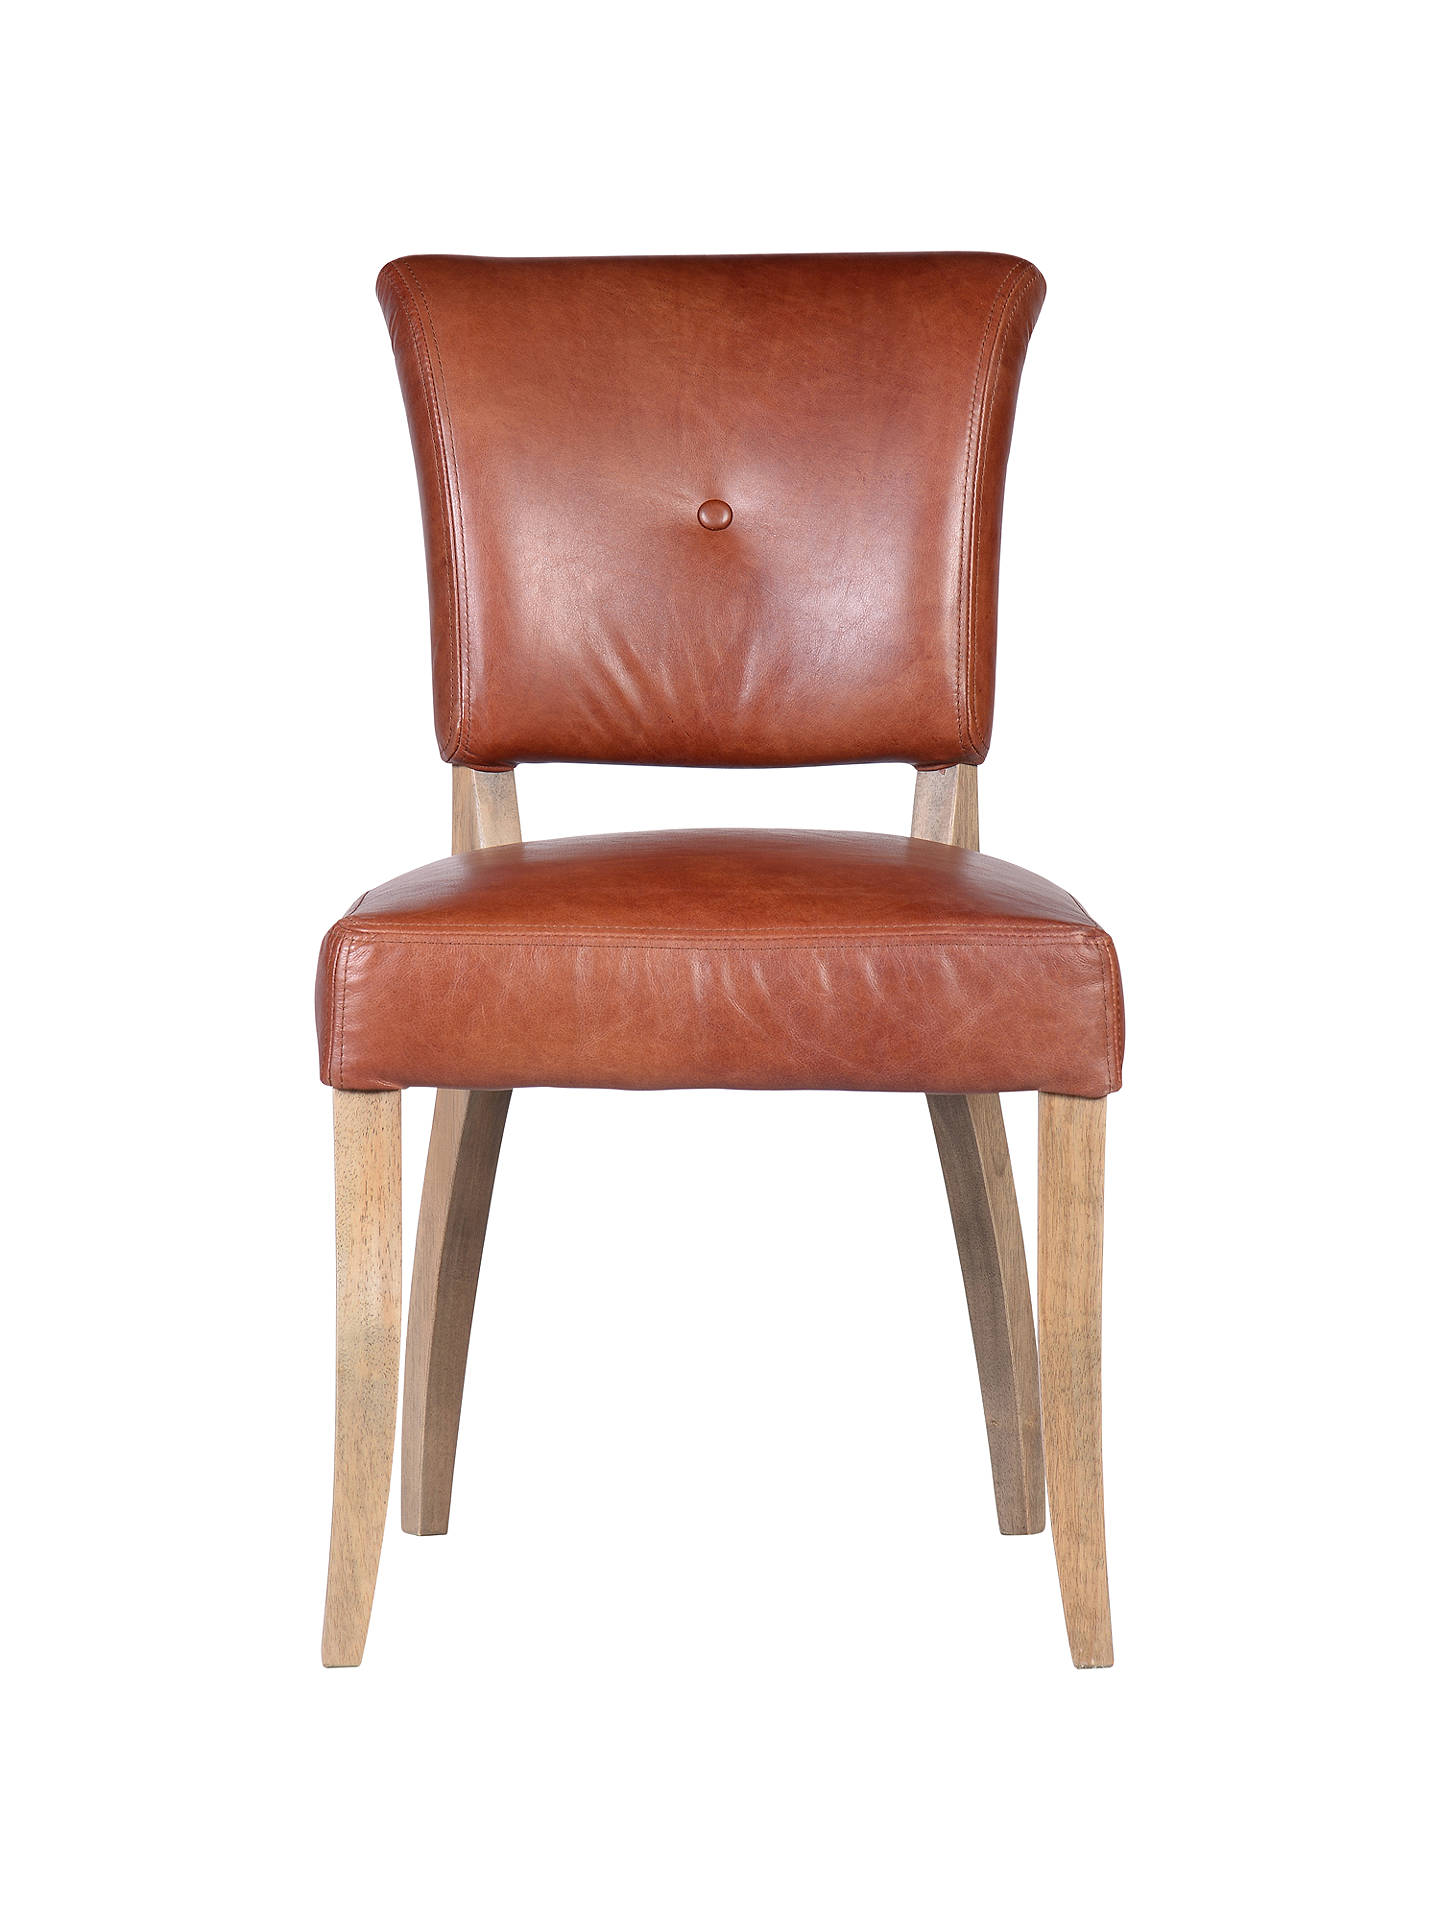 Awe Inspiring Saddle Leather Dining Chair Pabps2019 Chair Design Images Pabps2019Com